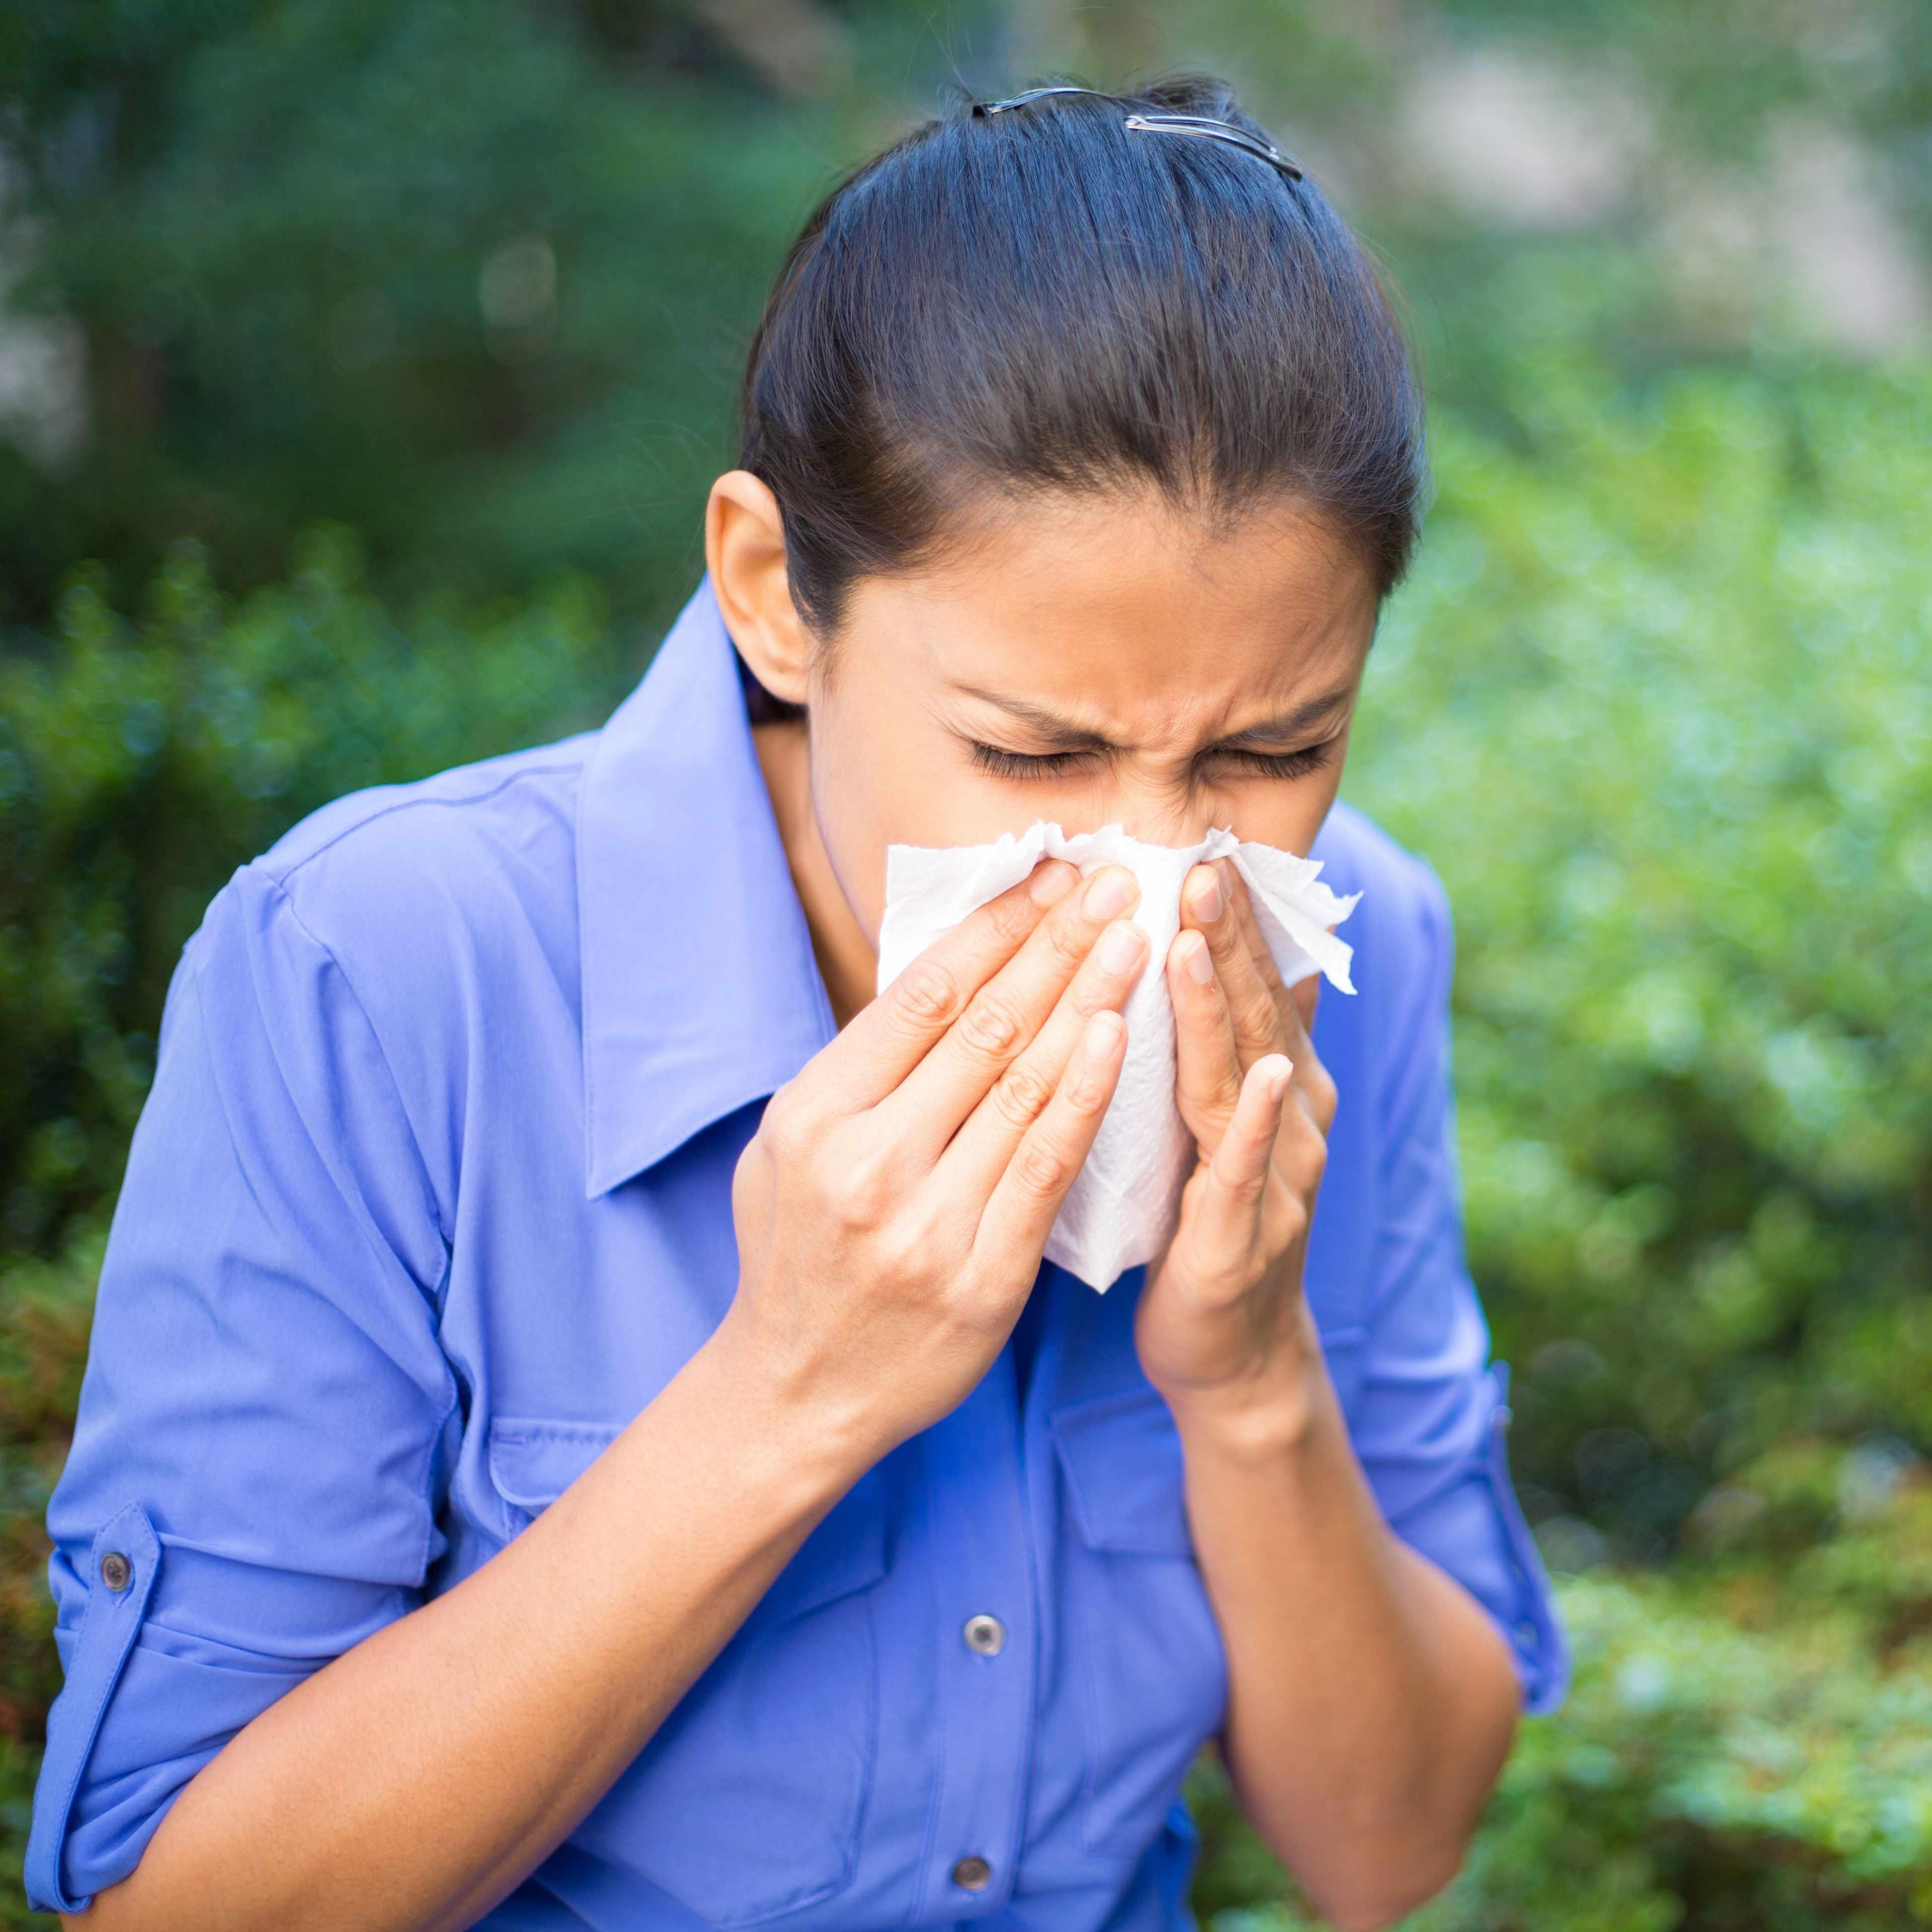 a woman blowing her nose into a tissue, sneezing